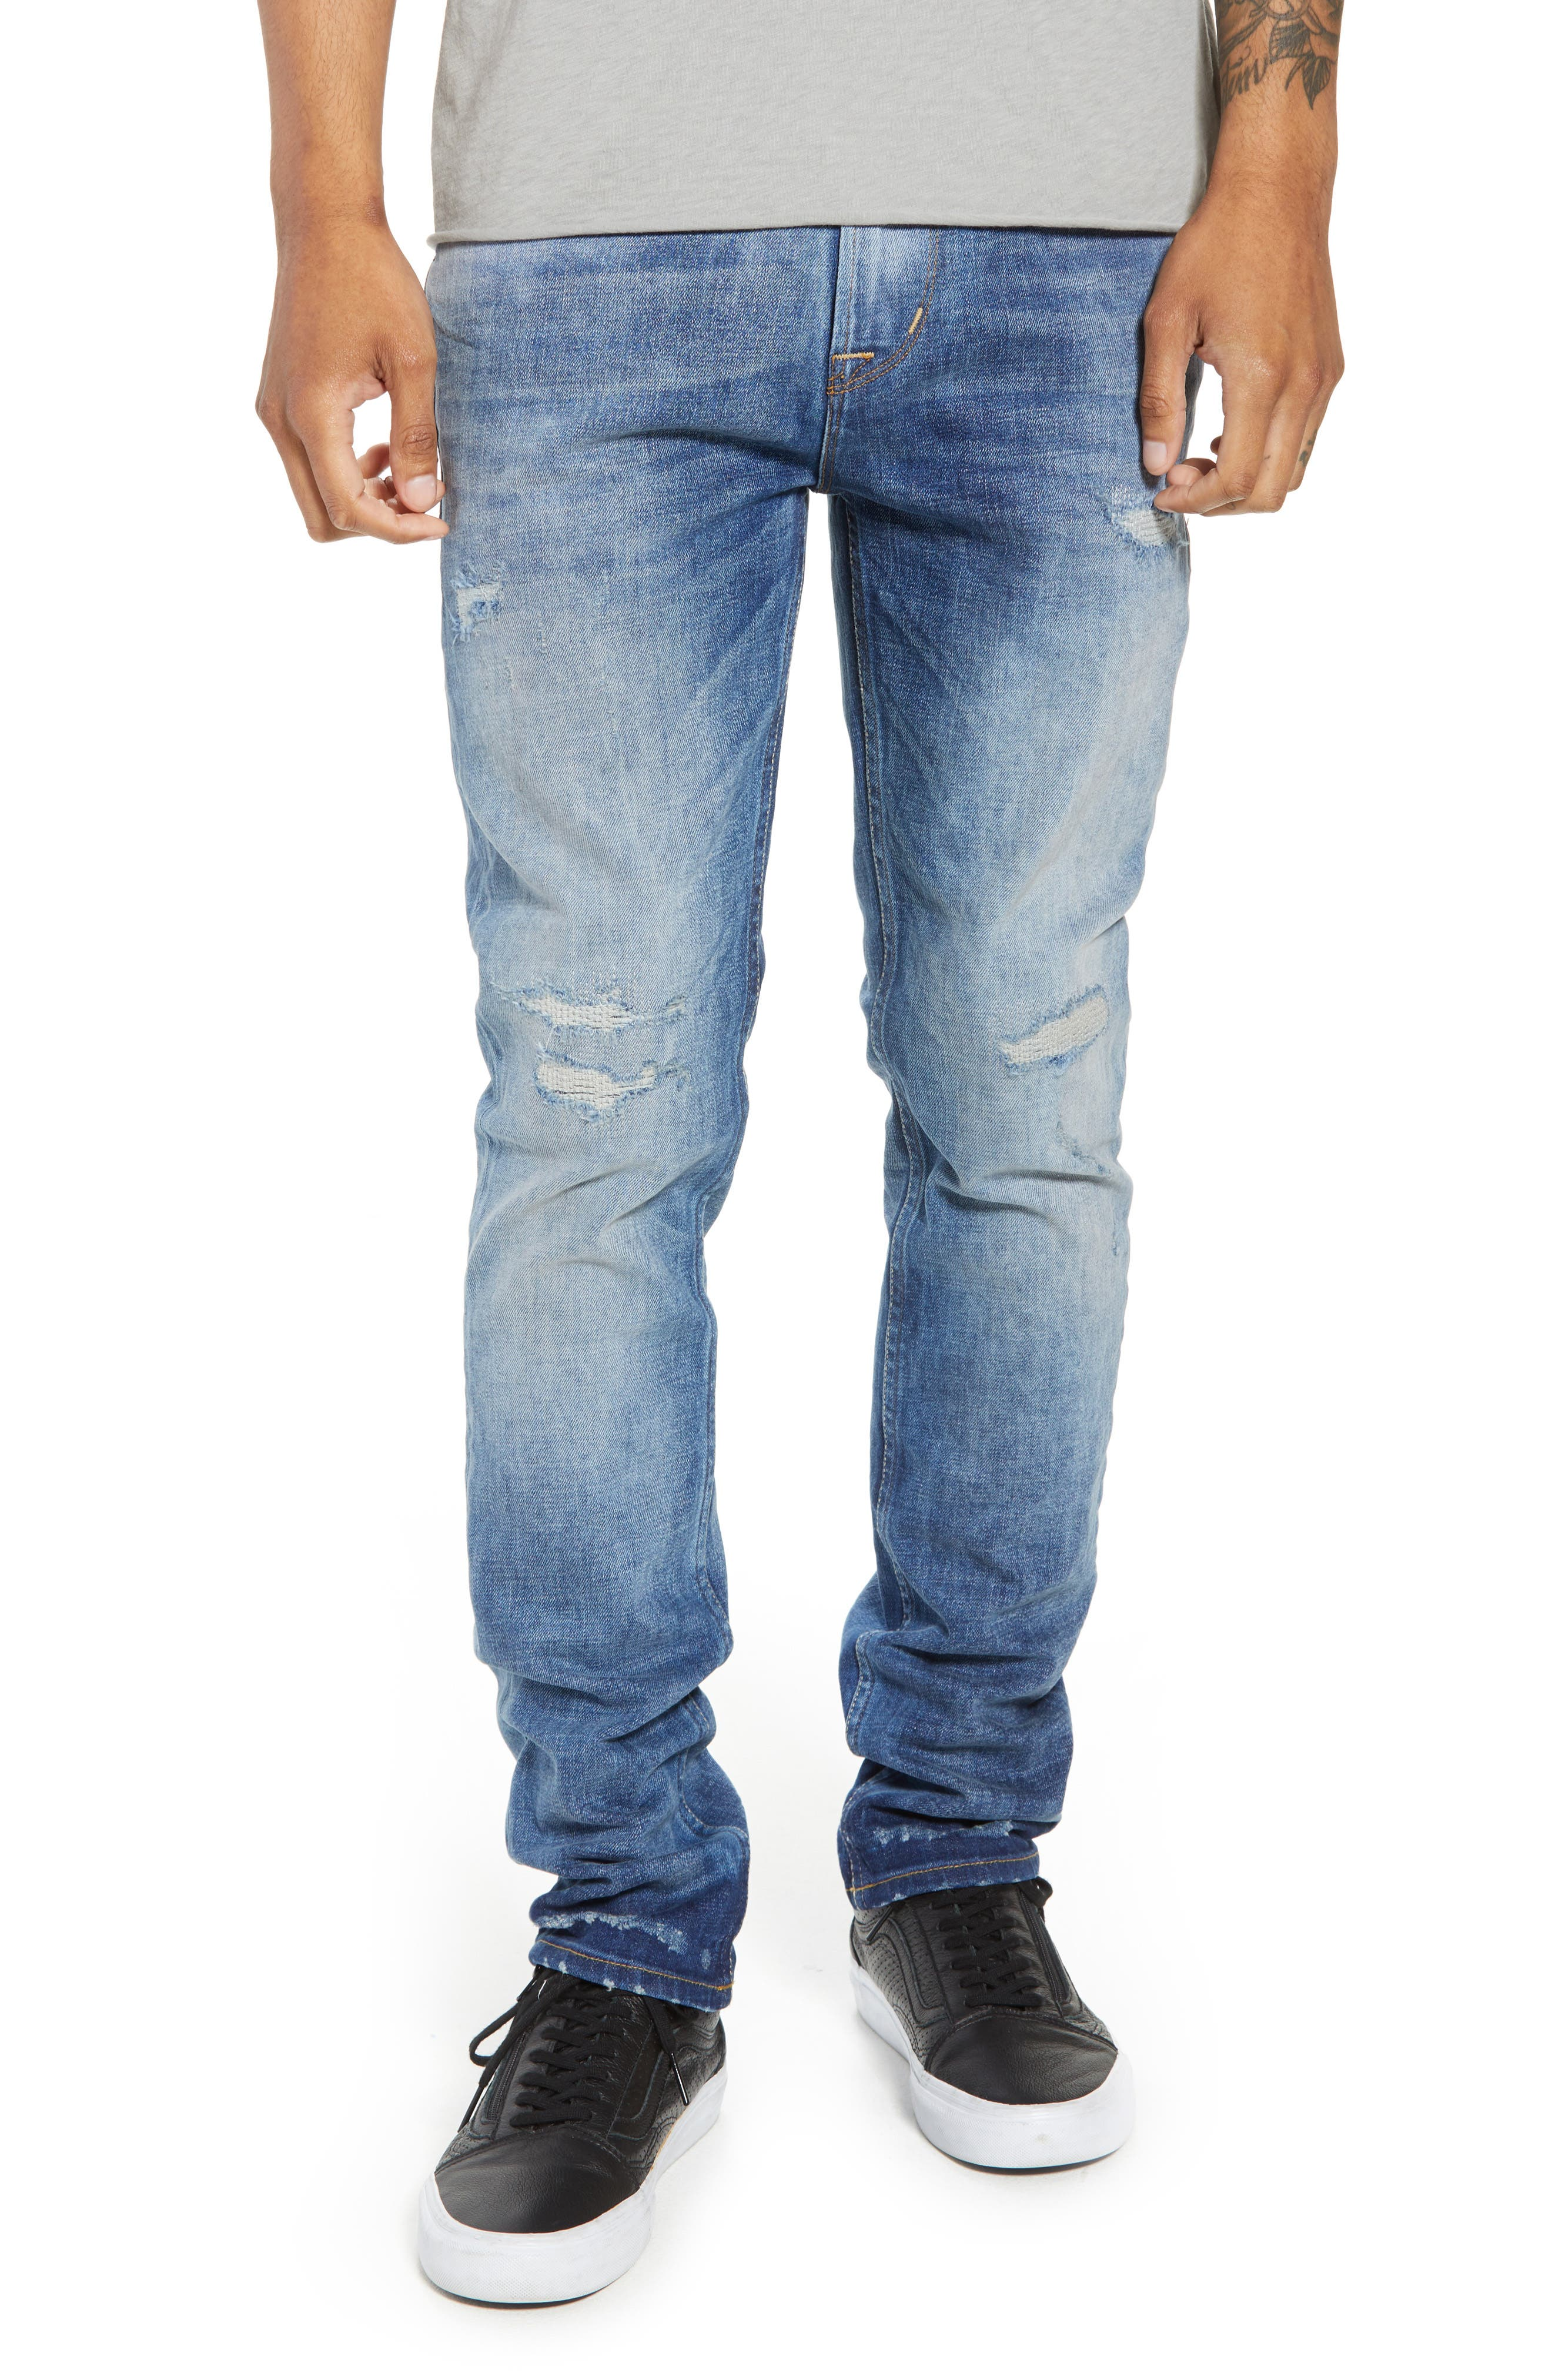 Axl Skinny Fit Jeans,                         Main,                         color, RIDE OUT